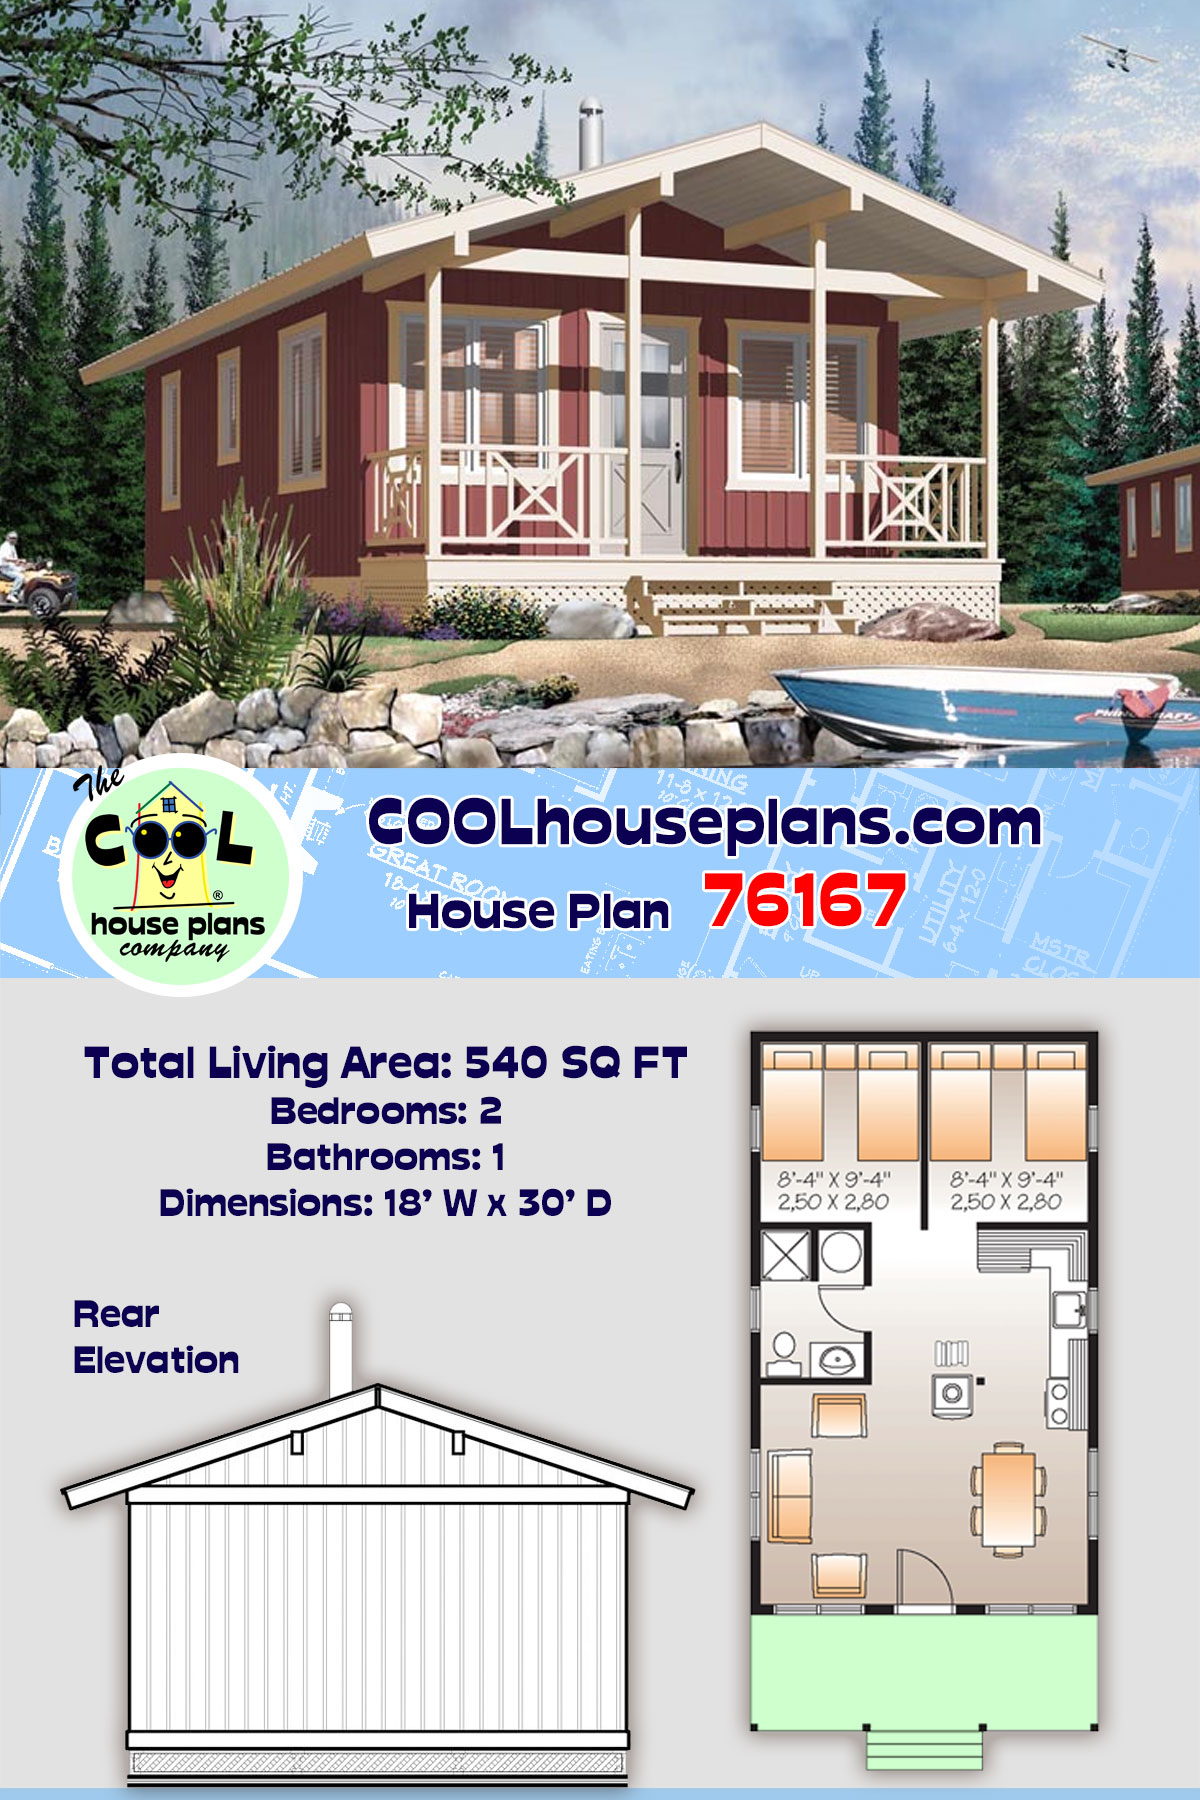 Cabin House Plan 76167 with 2 Beds, 1 Baths